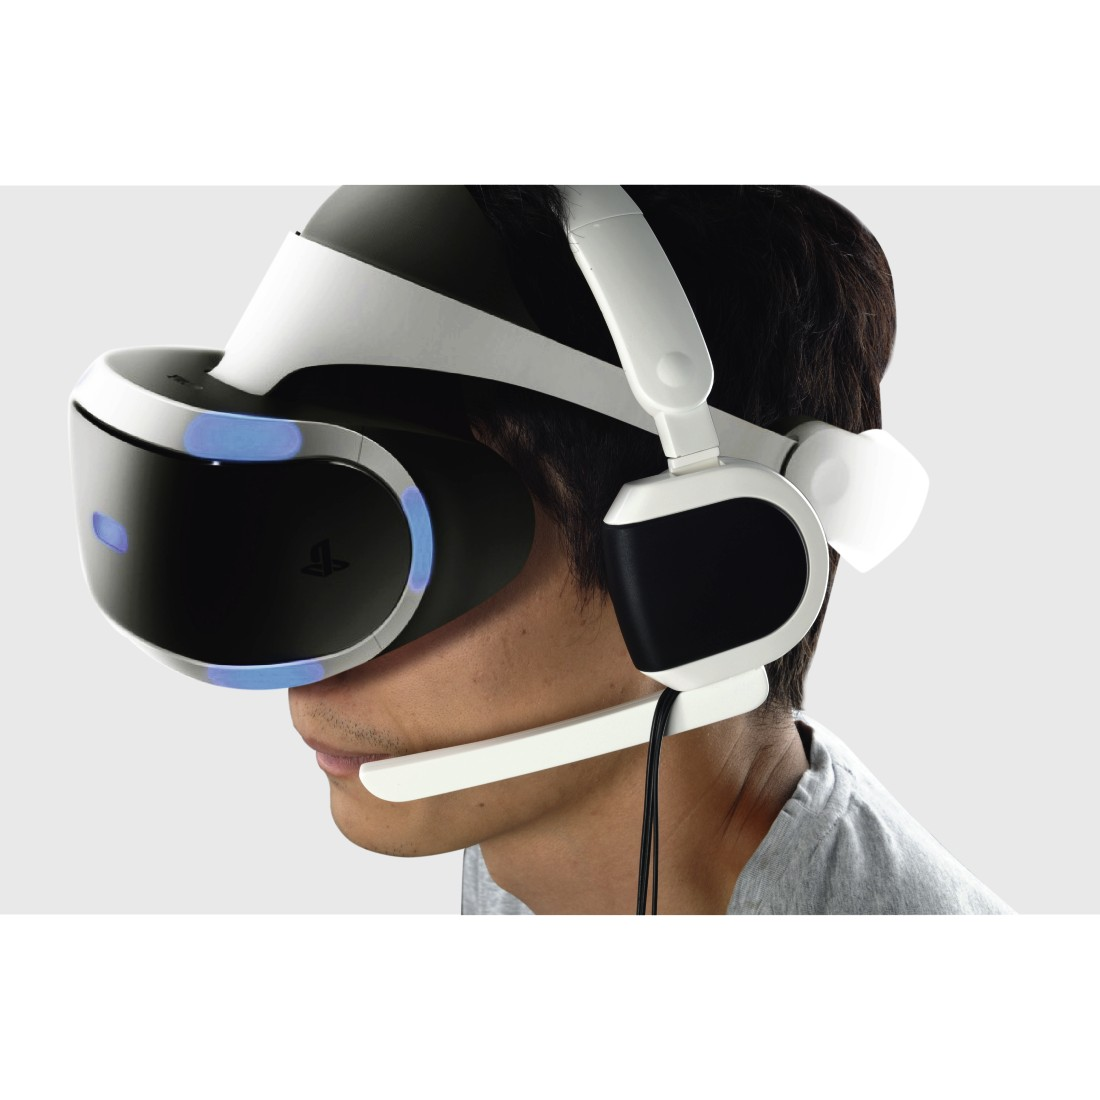 awx2 High-Res Appliance 2 - Hama, Insomnia VR Mono Overhead Headset for PS4/PS VR